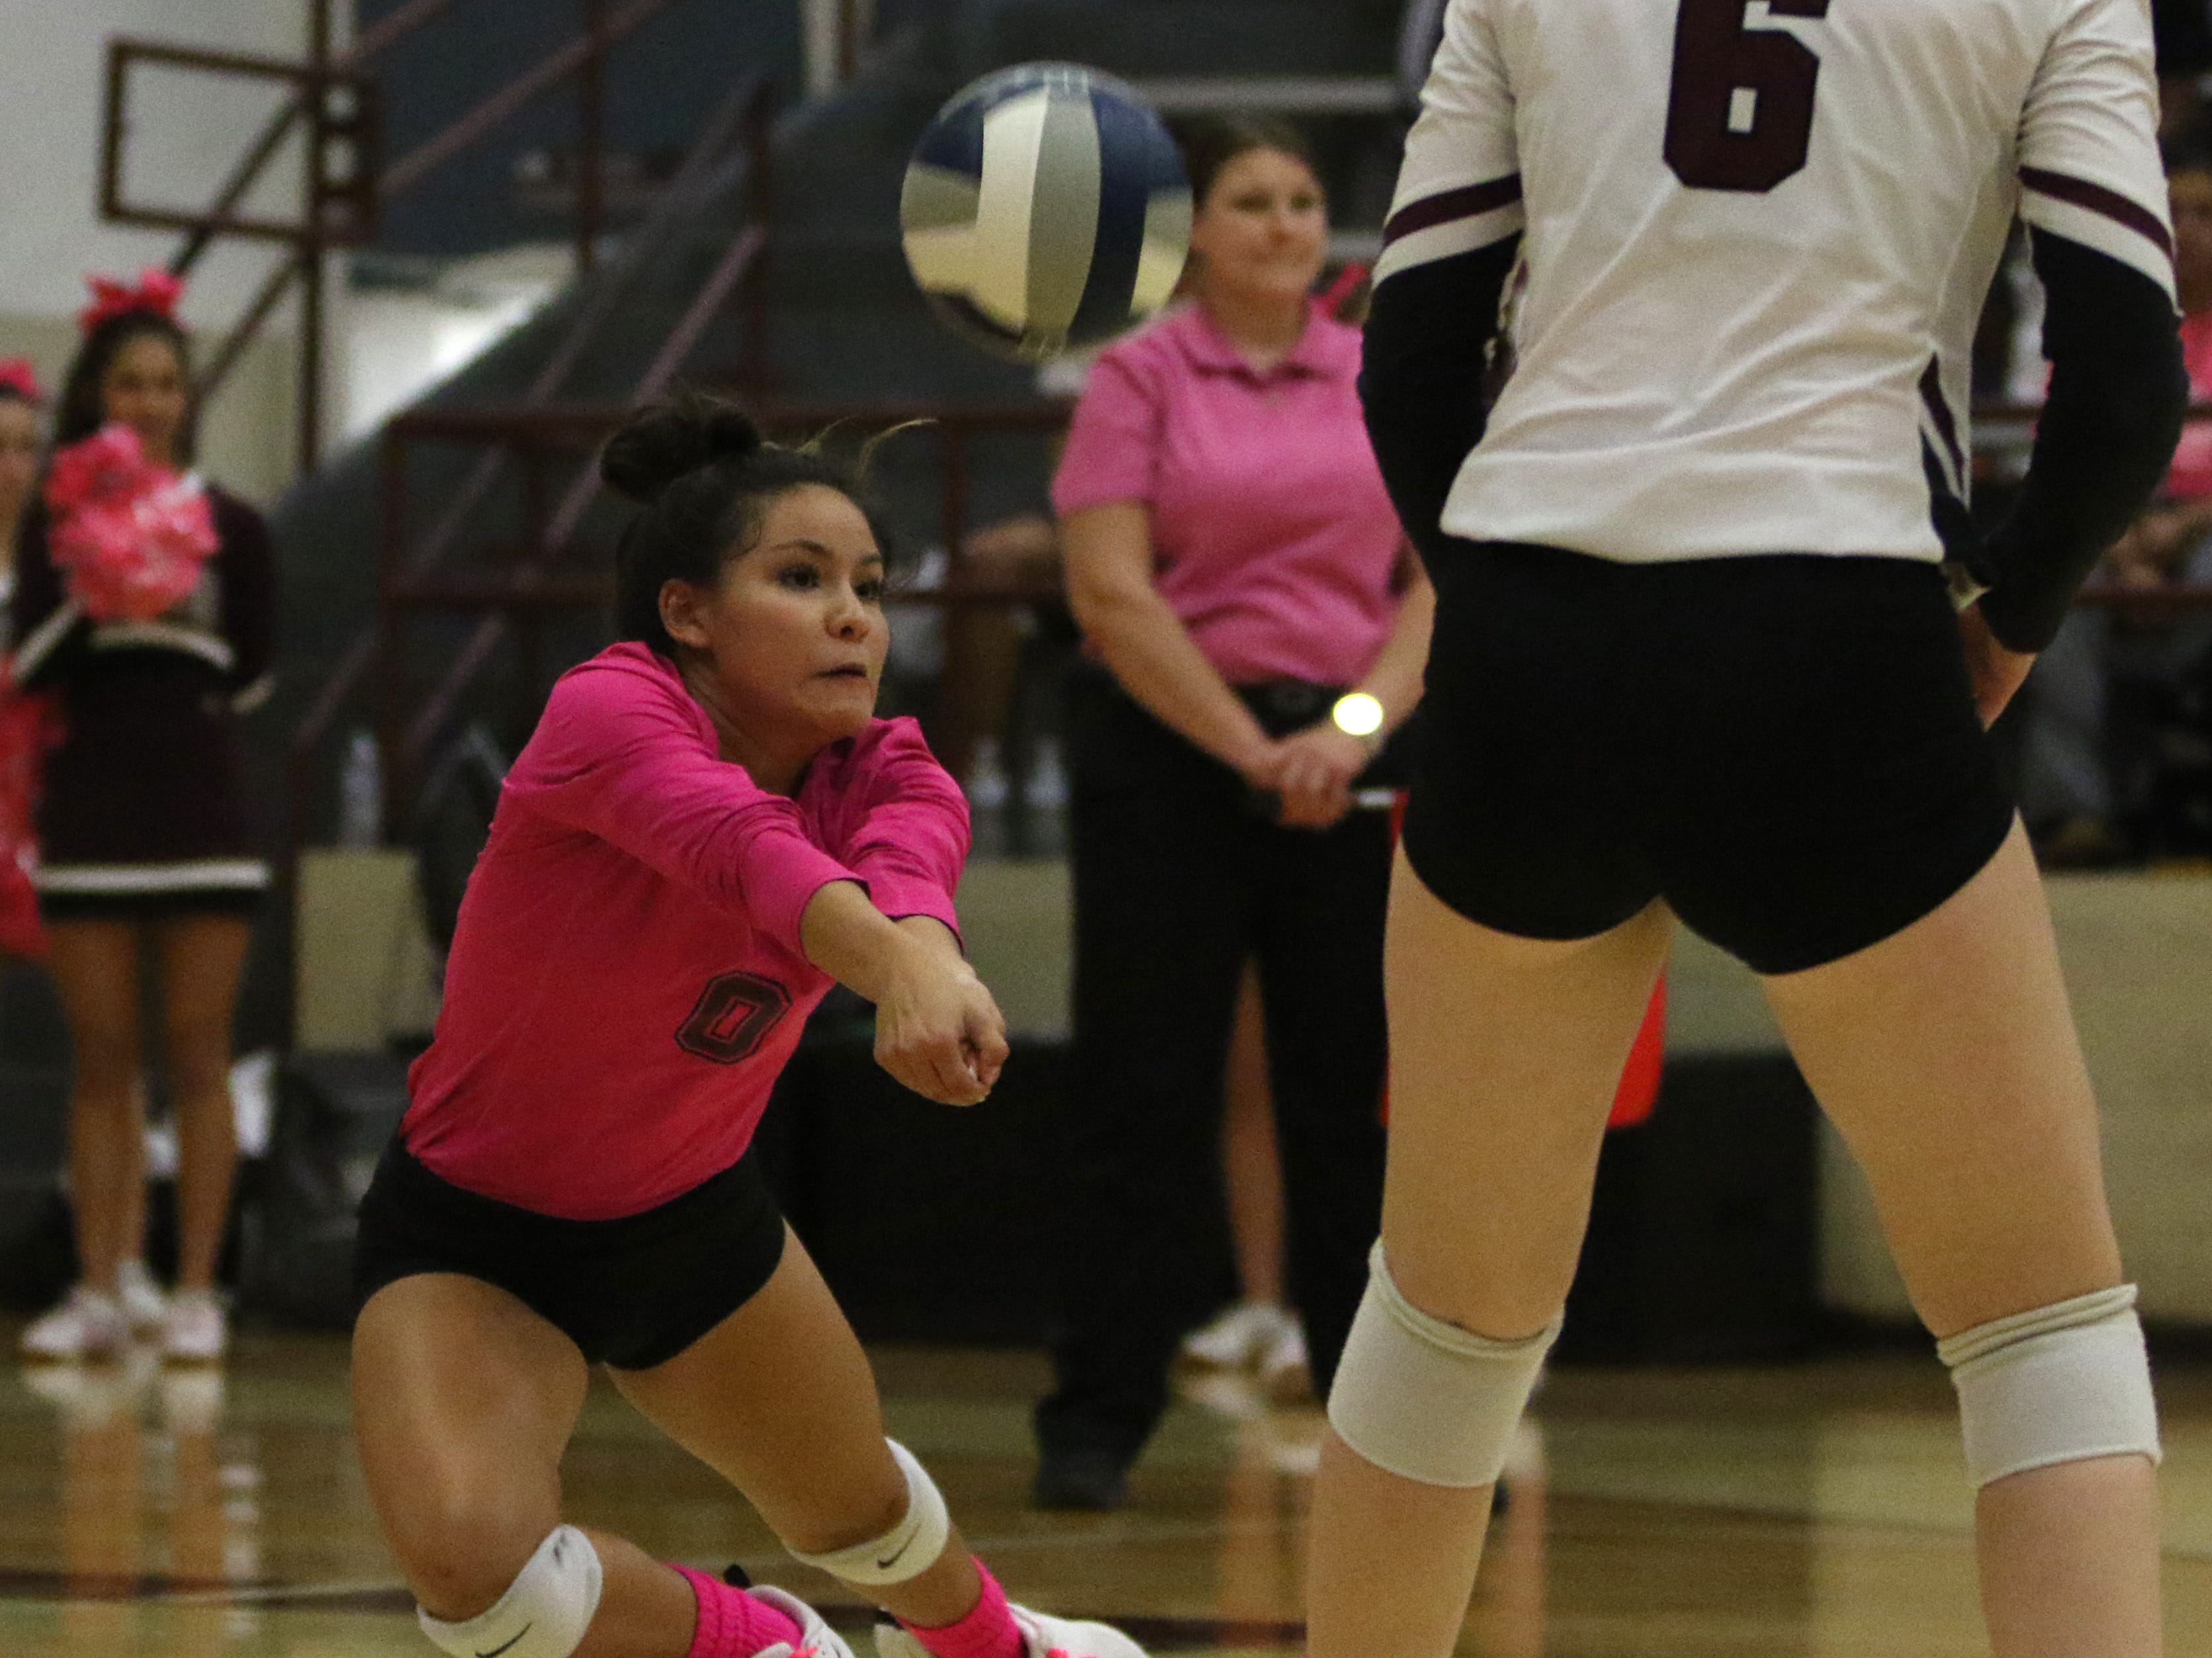 Vernon's Nevaeh Guerra keeps the ball in play against Graham Tuesday, Oct. 23, 2018, in Vernon. The Lady Blues defeated the Lady Lions 4-1.